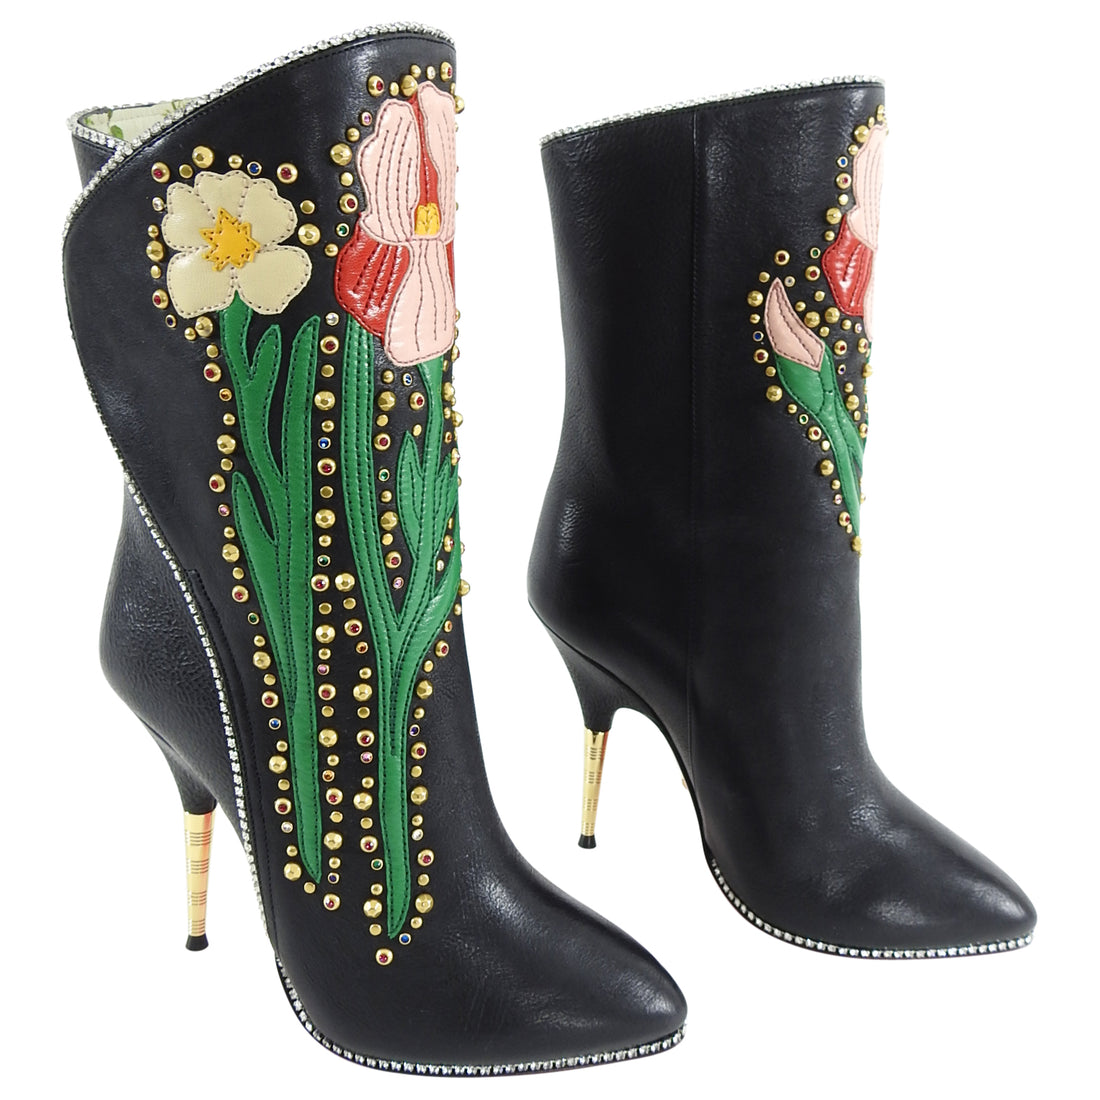 Gucci Fall 2017 Runway Black Crystal Floral Ankle Boots - 5